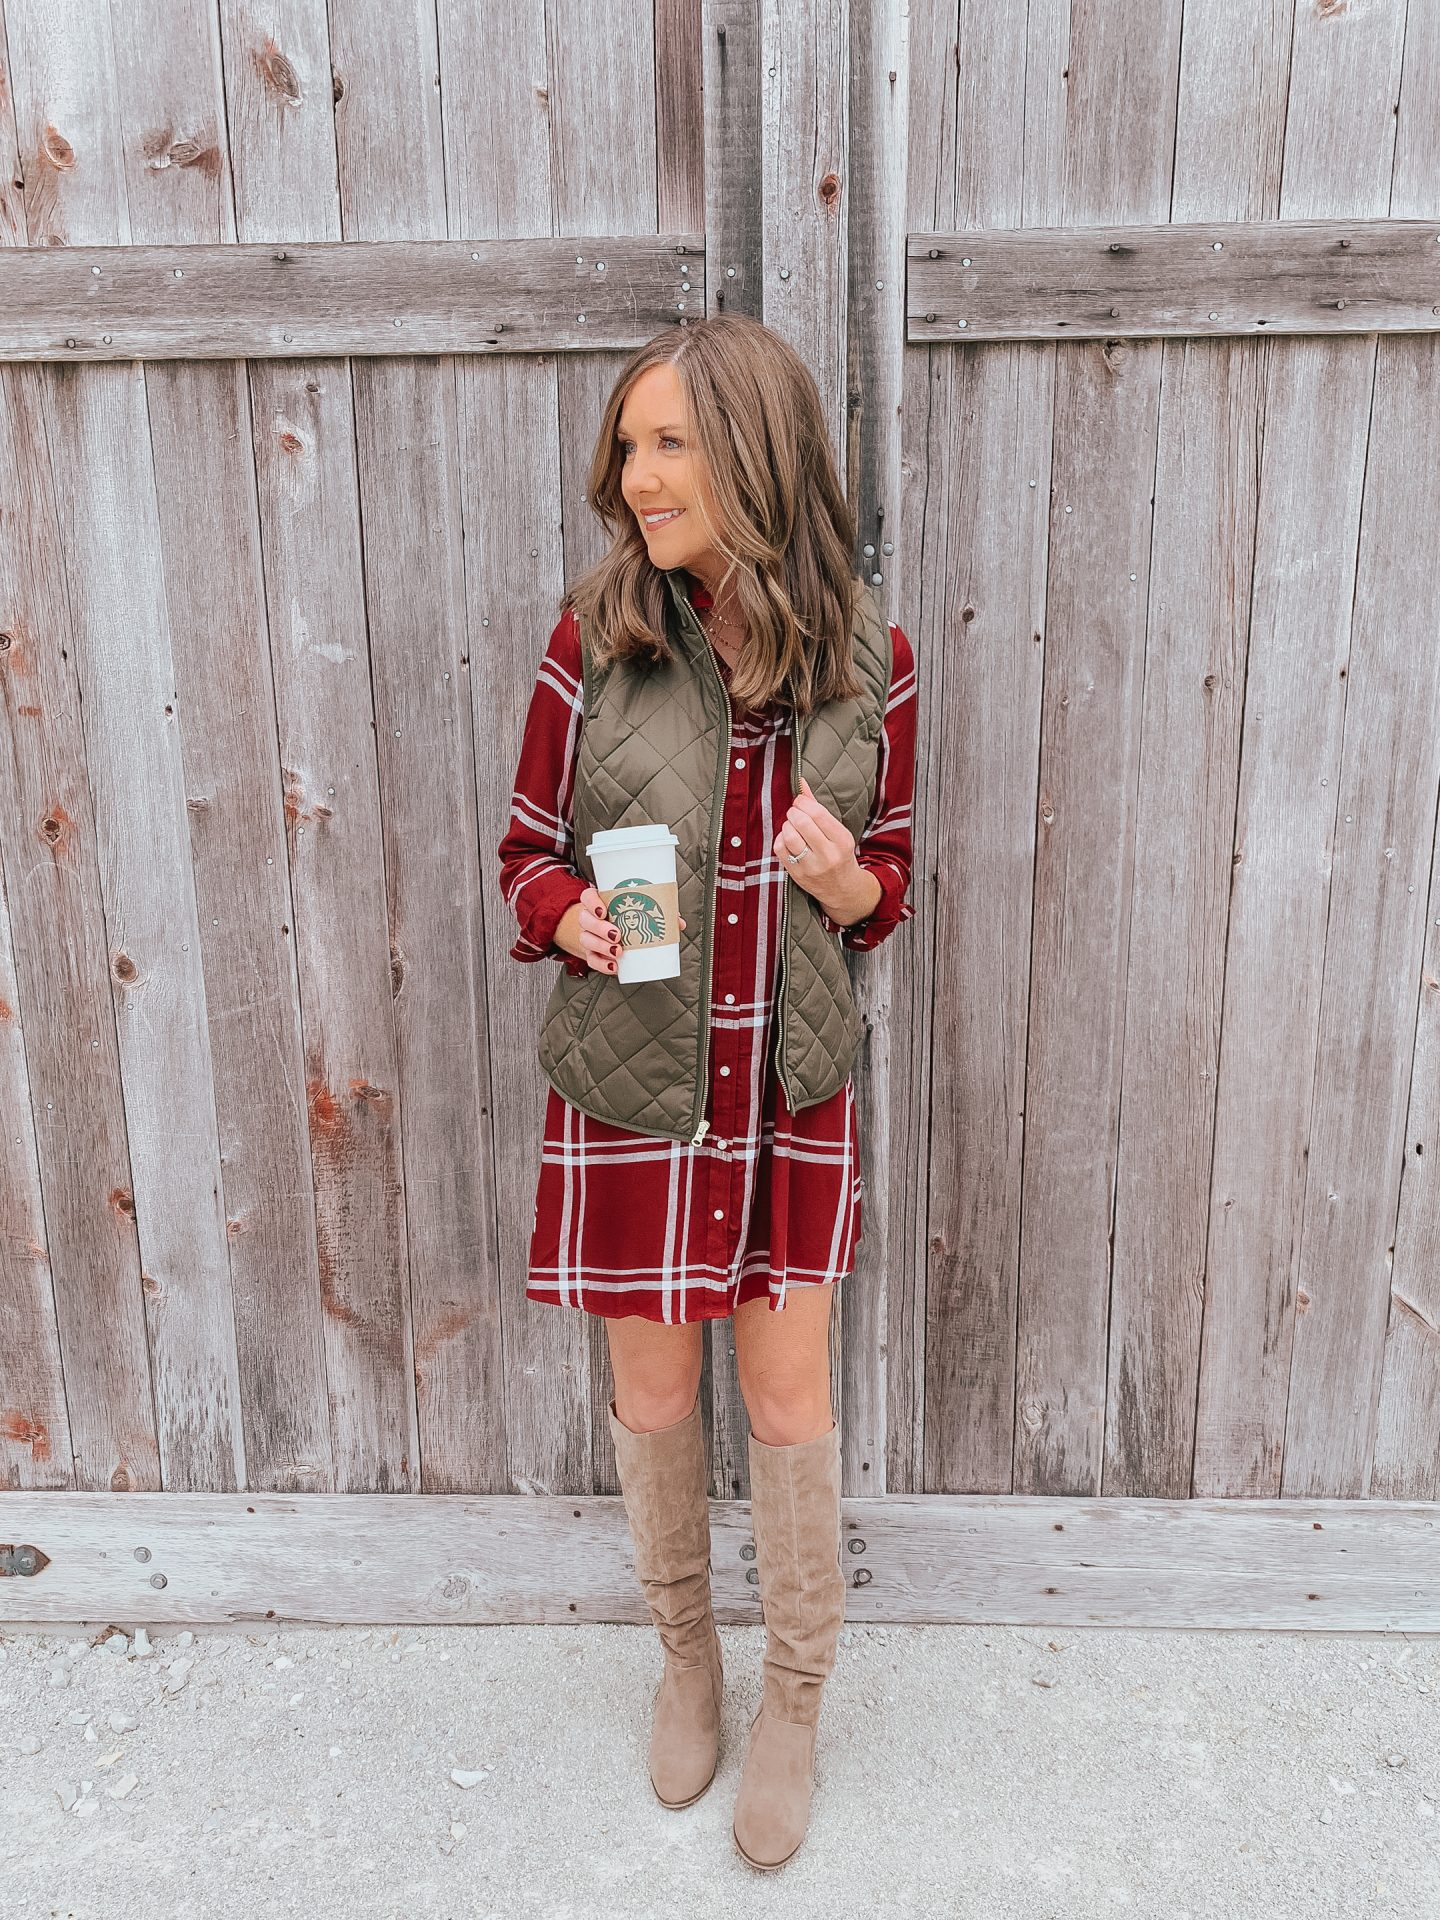 Under $50 dresses for fall family photos, affordable fall fashion, the best fall dresses, Old Navy fall 2018